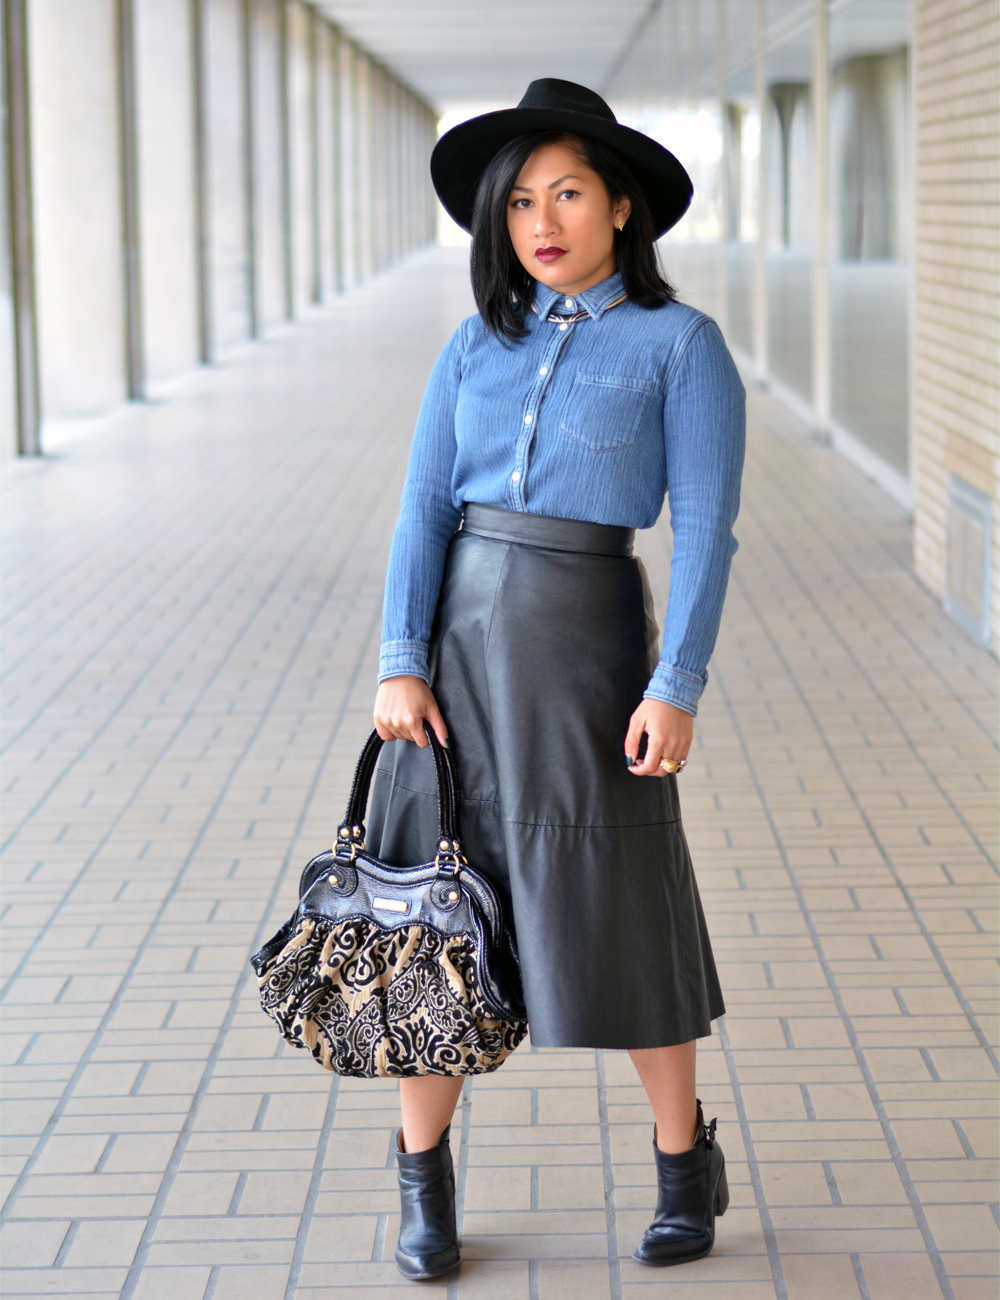 Madewell Chambray Shirt H&M Skirt